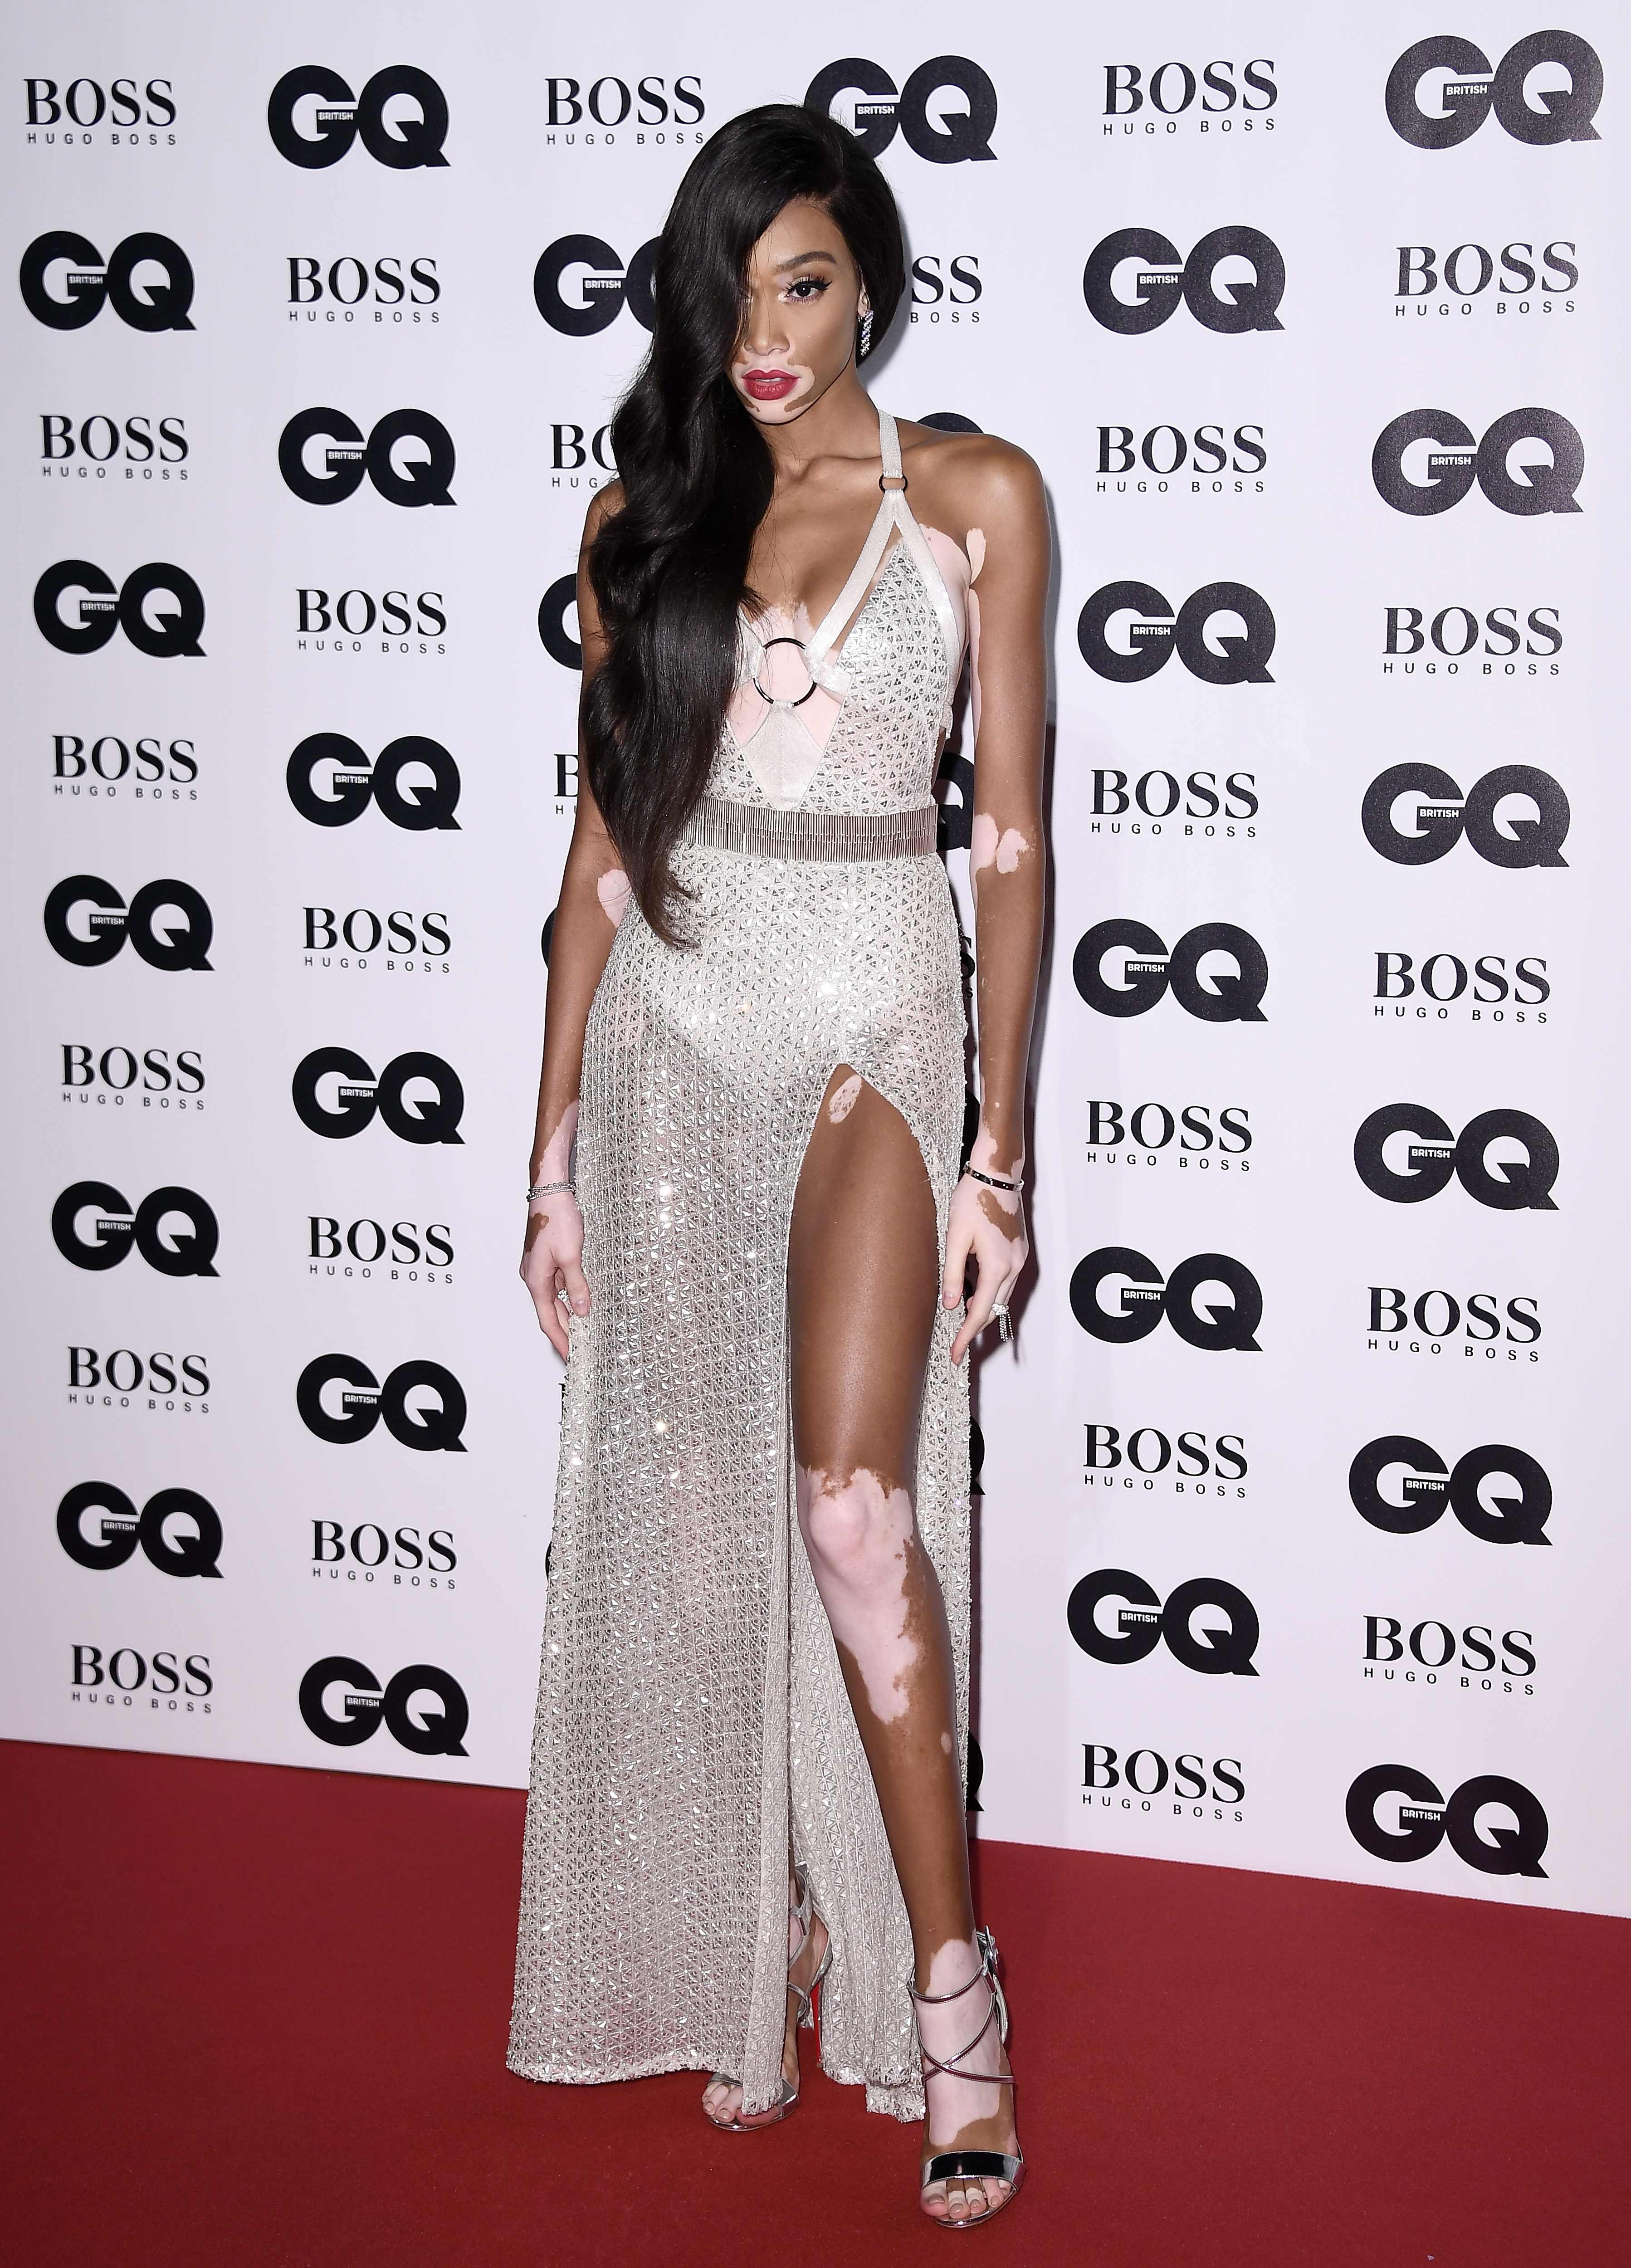 LONDON, ENGLAND - SEPTEMBER 05:  Winnie Harlow attends the GQ Men Of The Year Awards at the Tate Modern on September 5, 2017 in London, England.  (Photo by Gareth Cattermole/Getty Images)